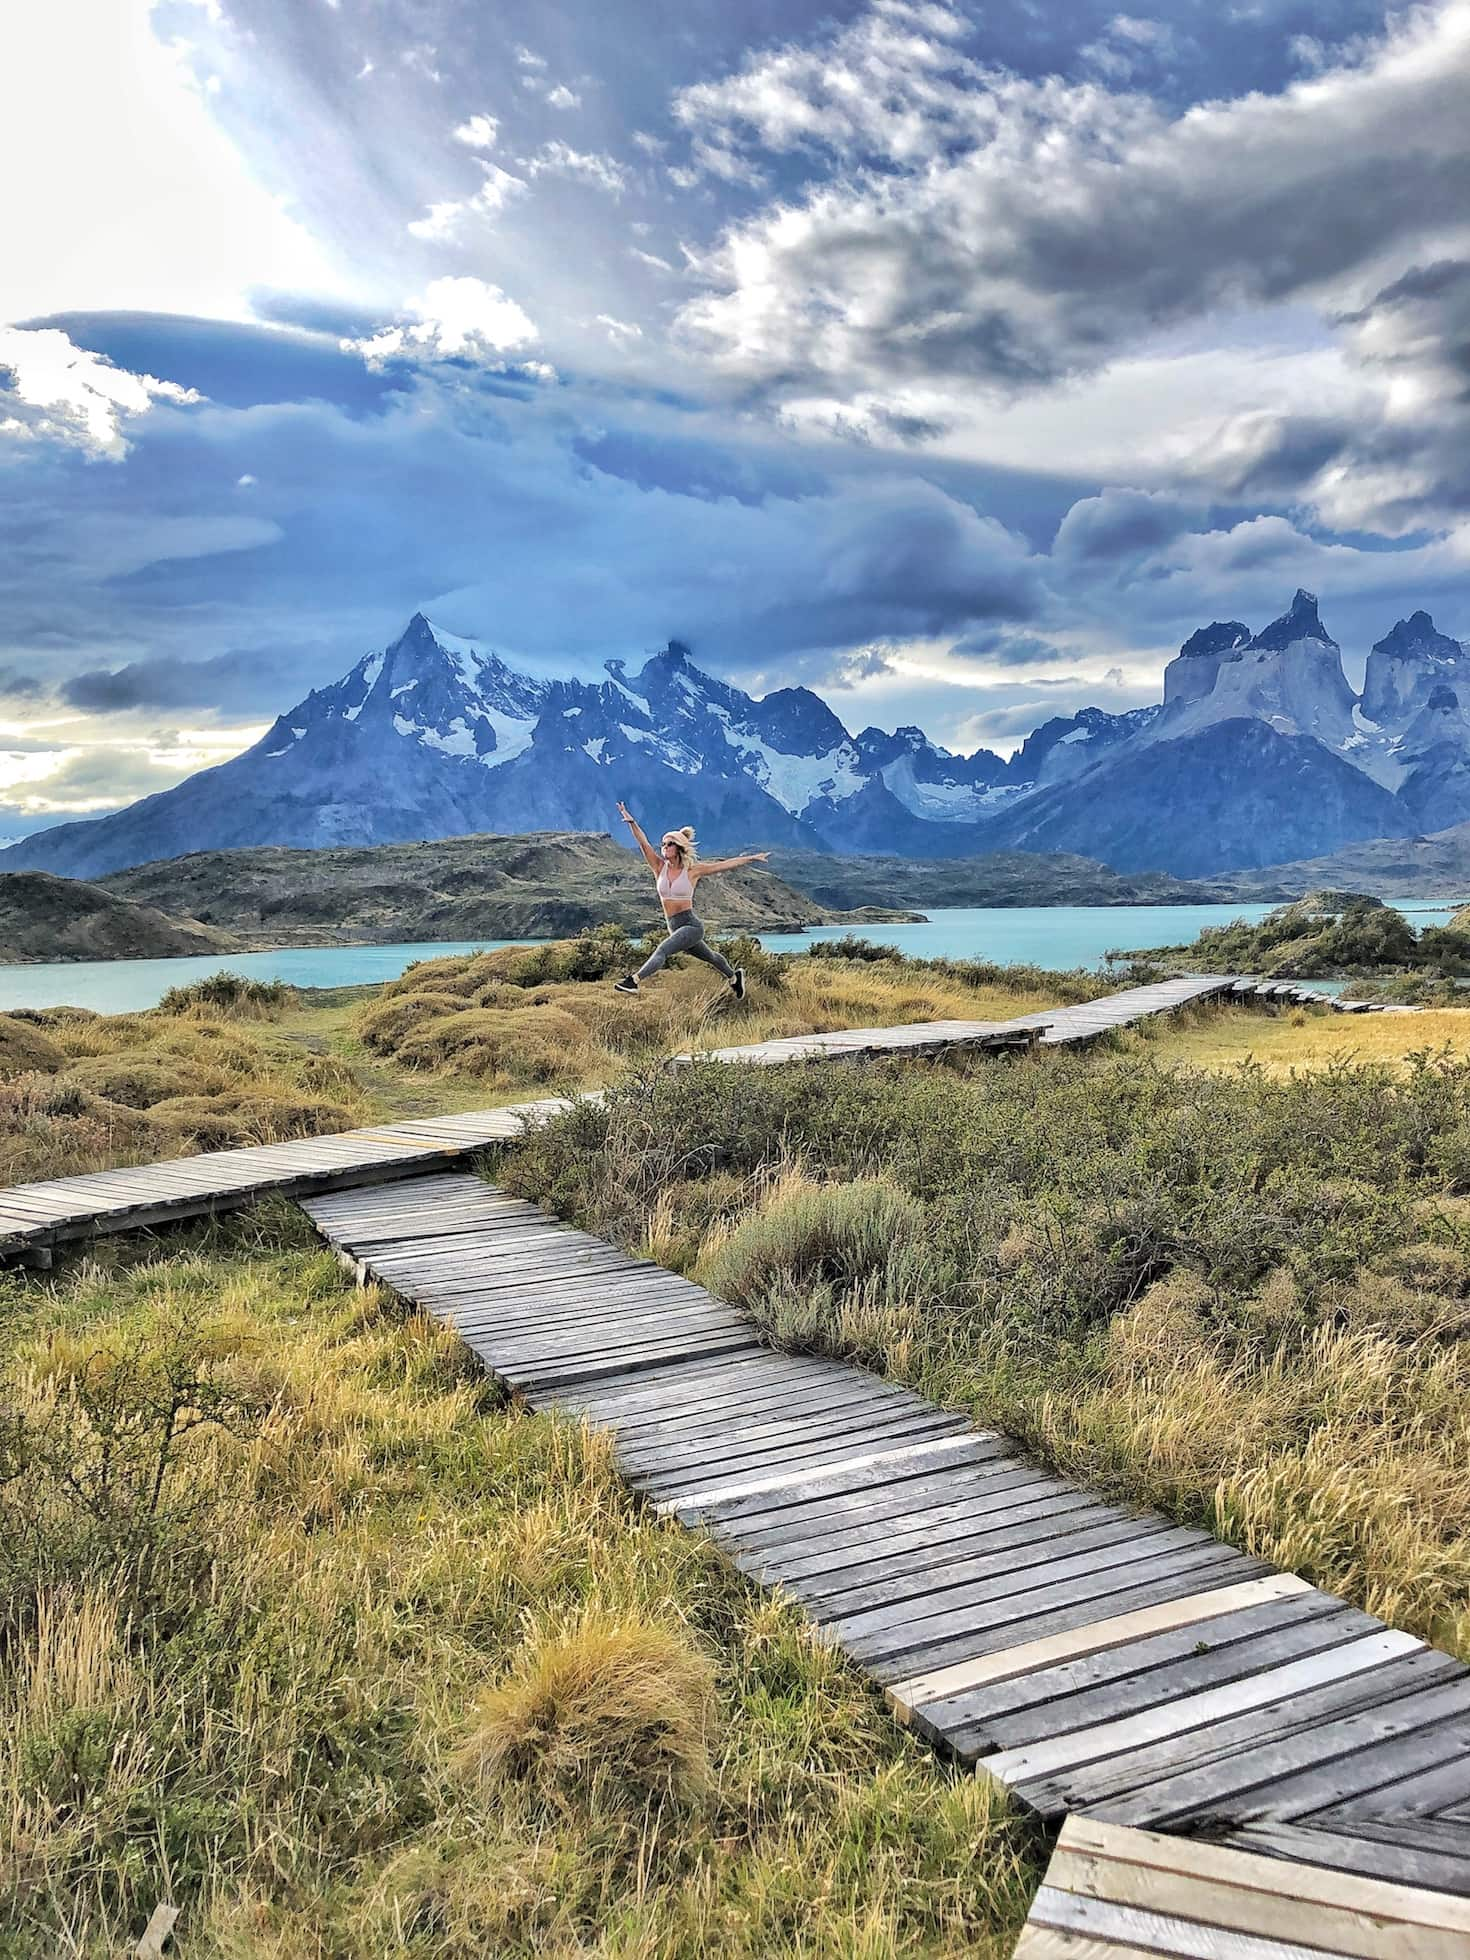 Top Tips For Planning A Trip To Torres del Paine